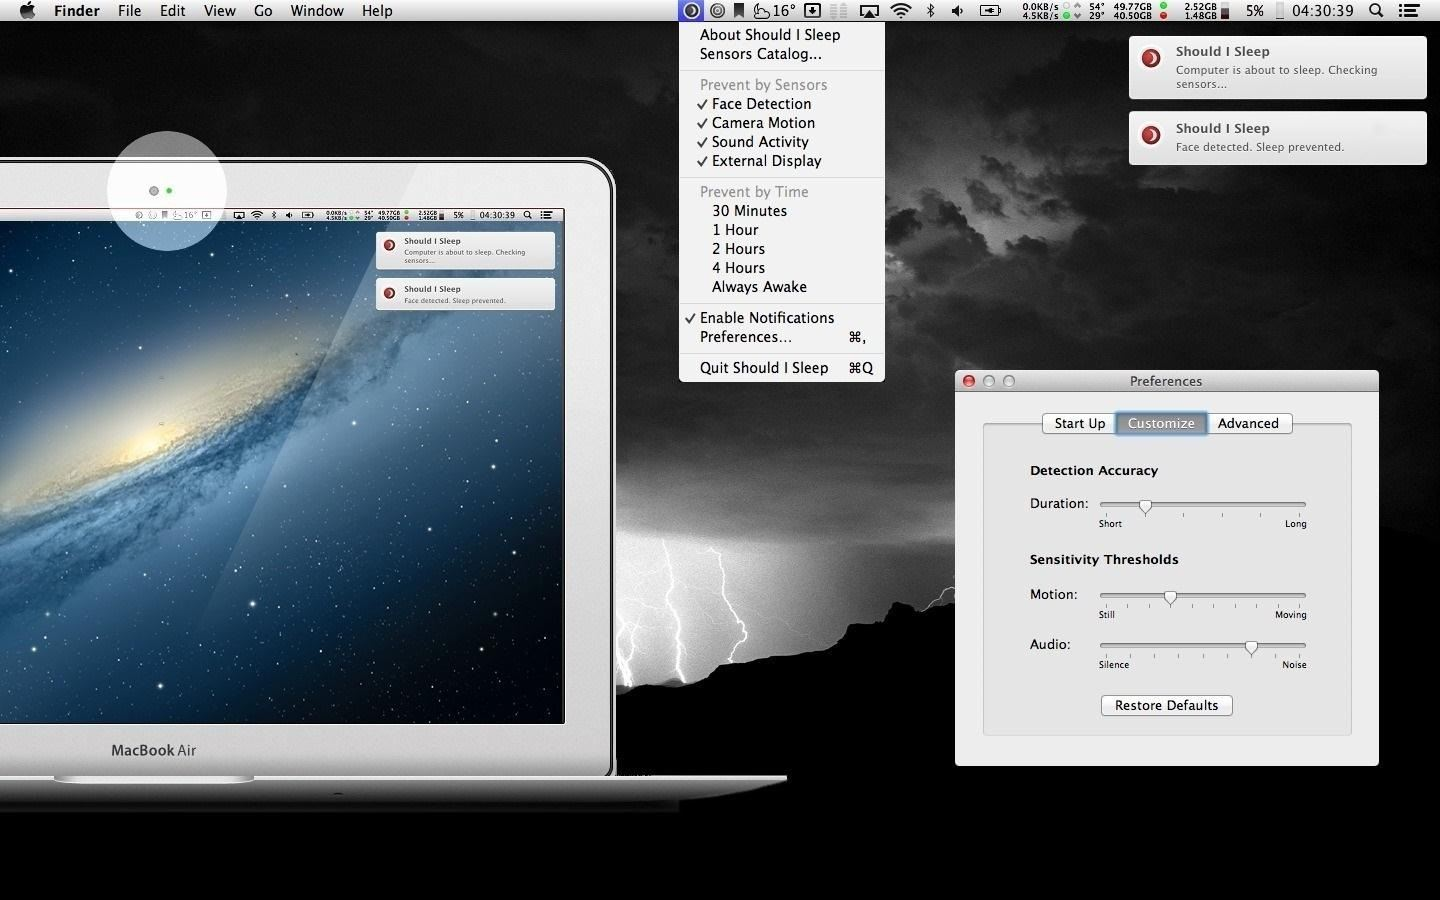 How to Keep Your Mac's Display from Dimming on You While You're Reading Using Audio and Voice Detection